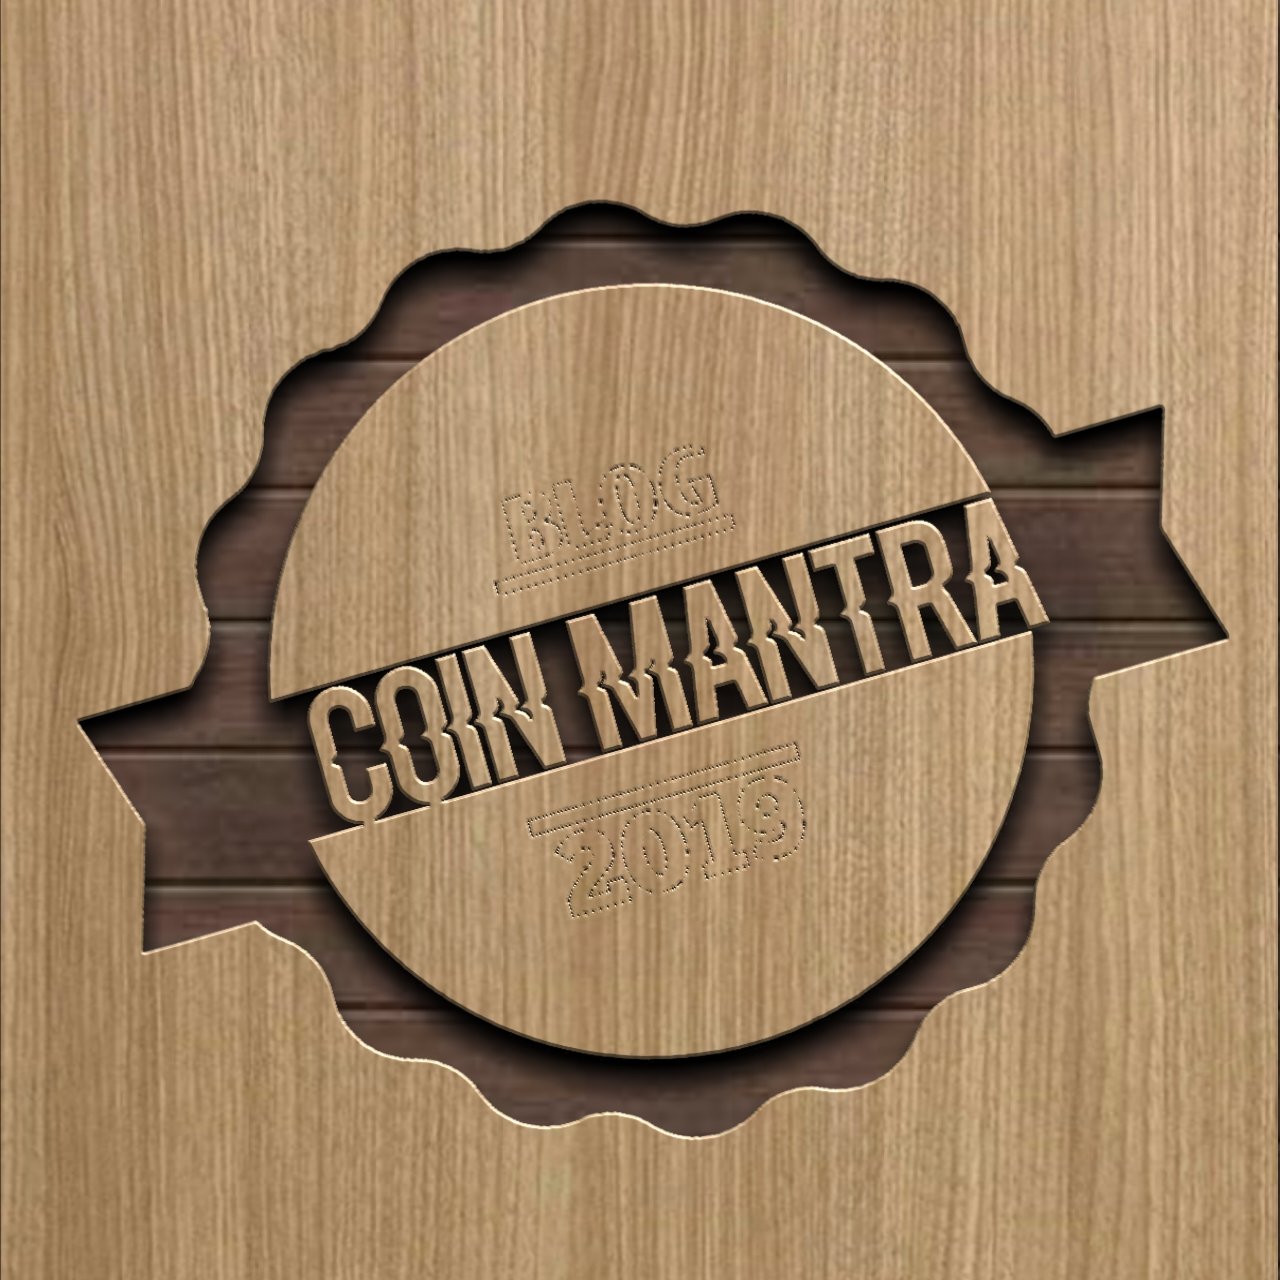 Coinmantra (cryptocurrency and Blockchain)